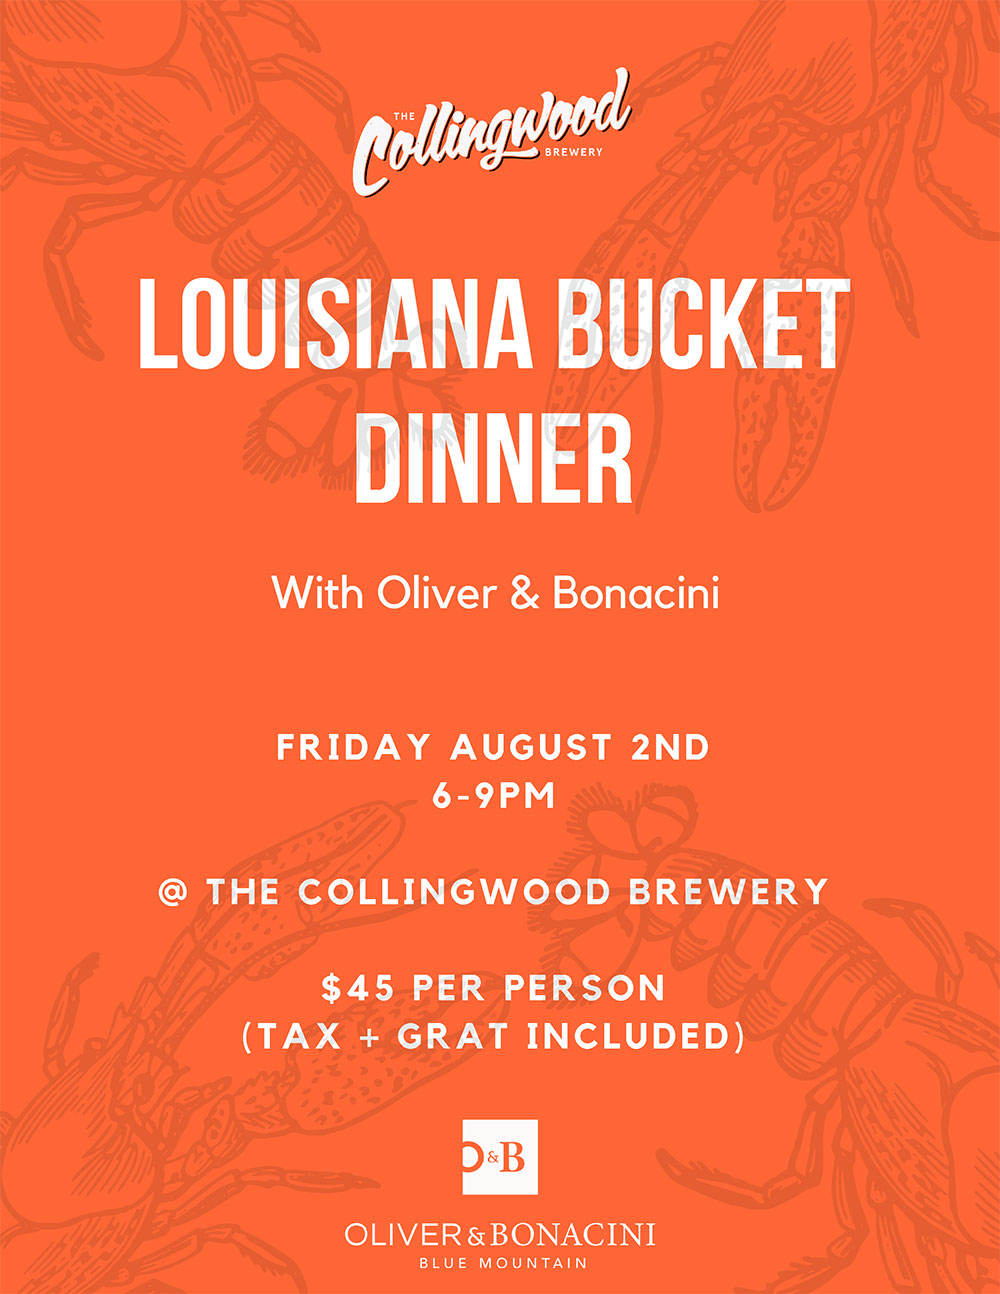 Does down home Cajun cooking and superb craft beer pairings grab your fancy? Join us Friday August 2, 6 pm to 9 pm at The Collingwood Brewery for a scrumptious Louisiana Bucket dinner catered by Oliver & Bonacini.  Stay tuned for full menu and live entertainment details!   SOLD OUT